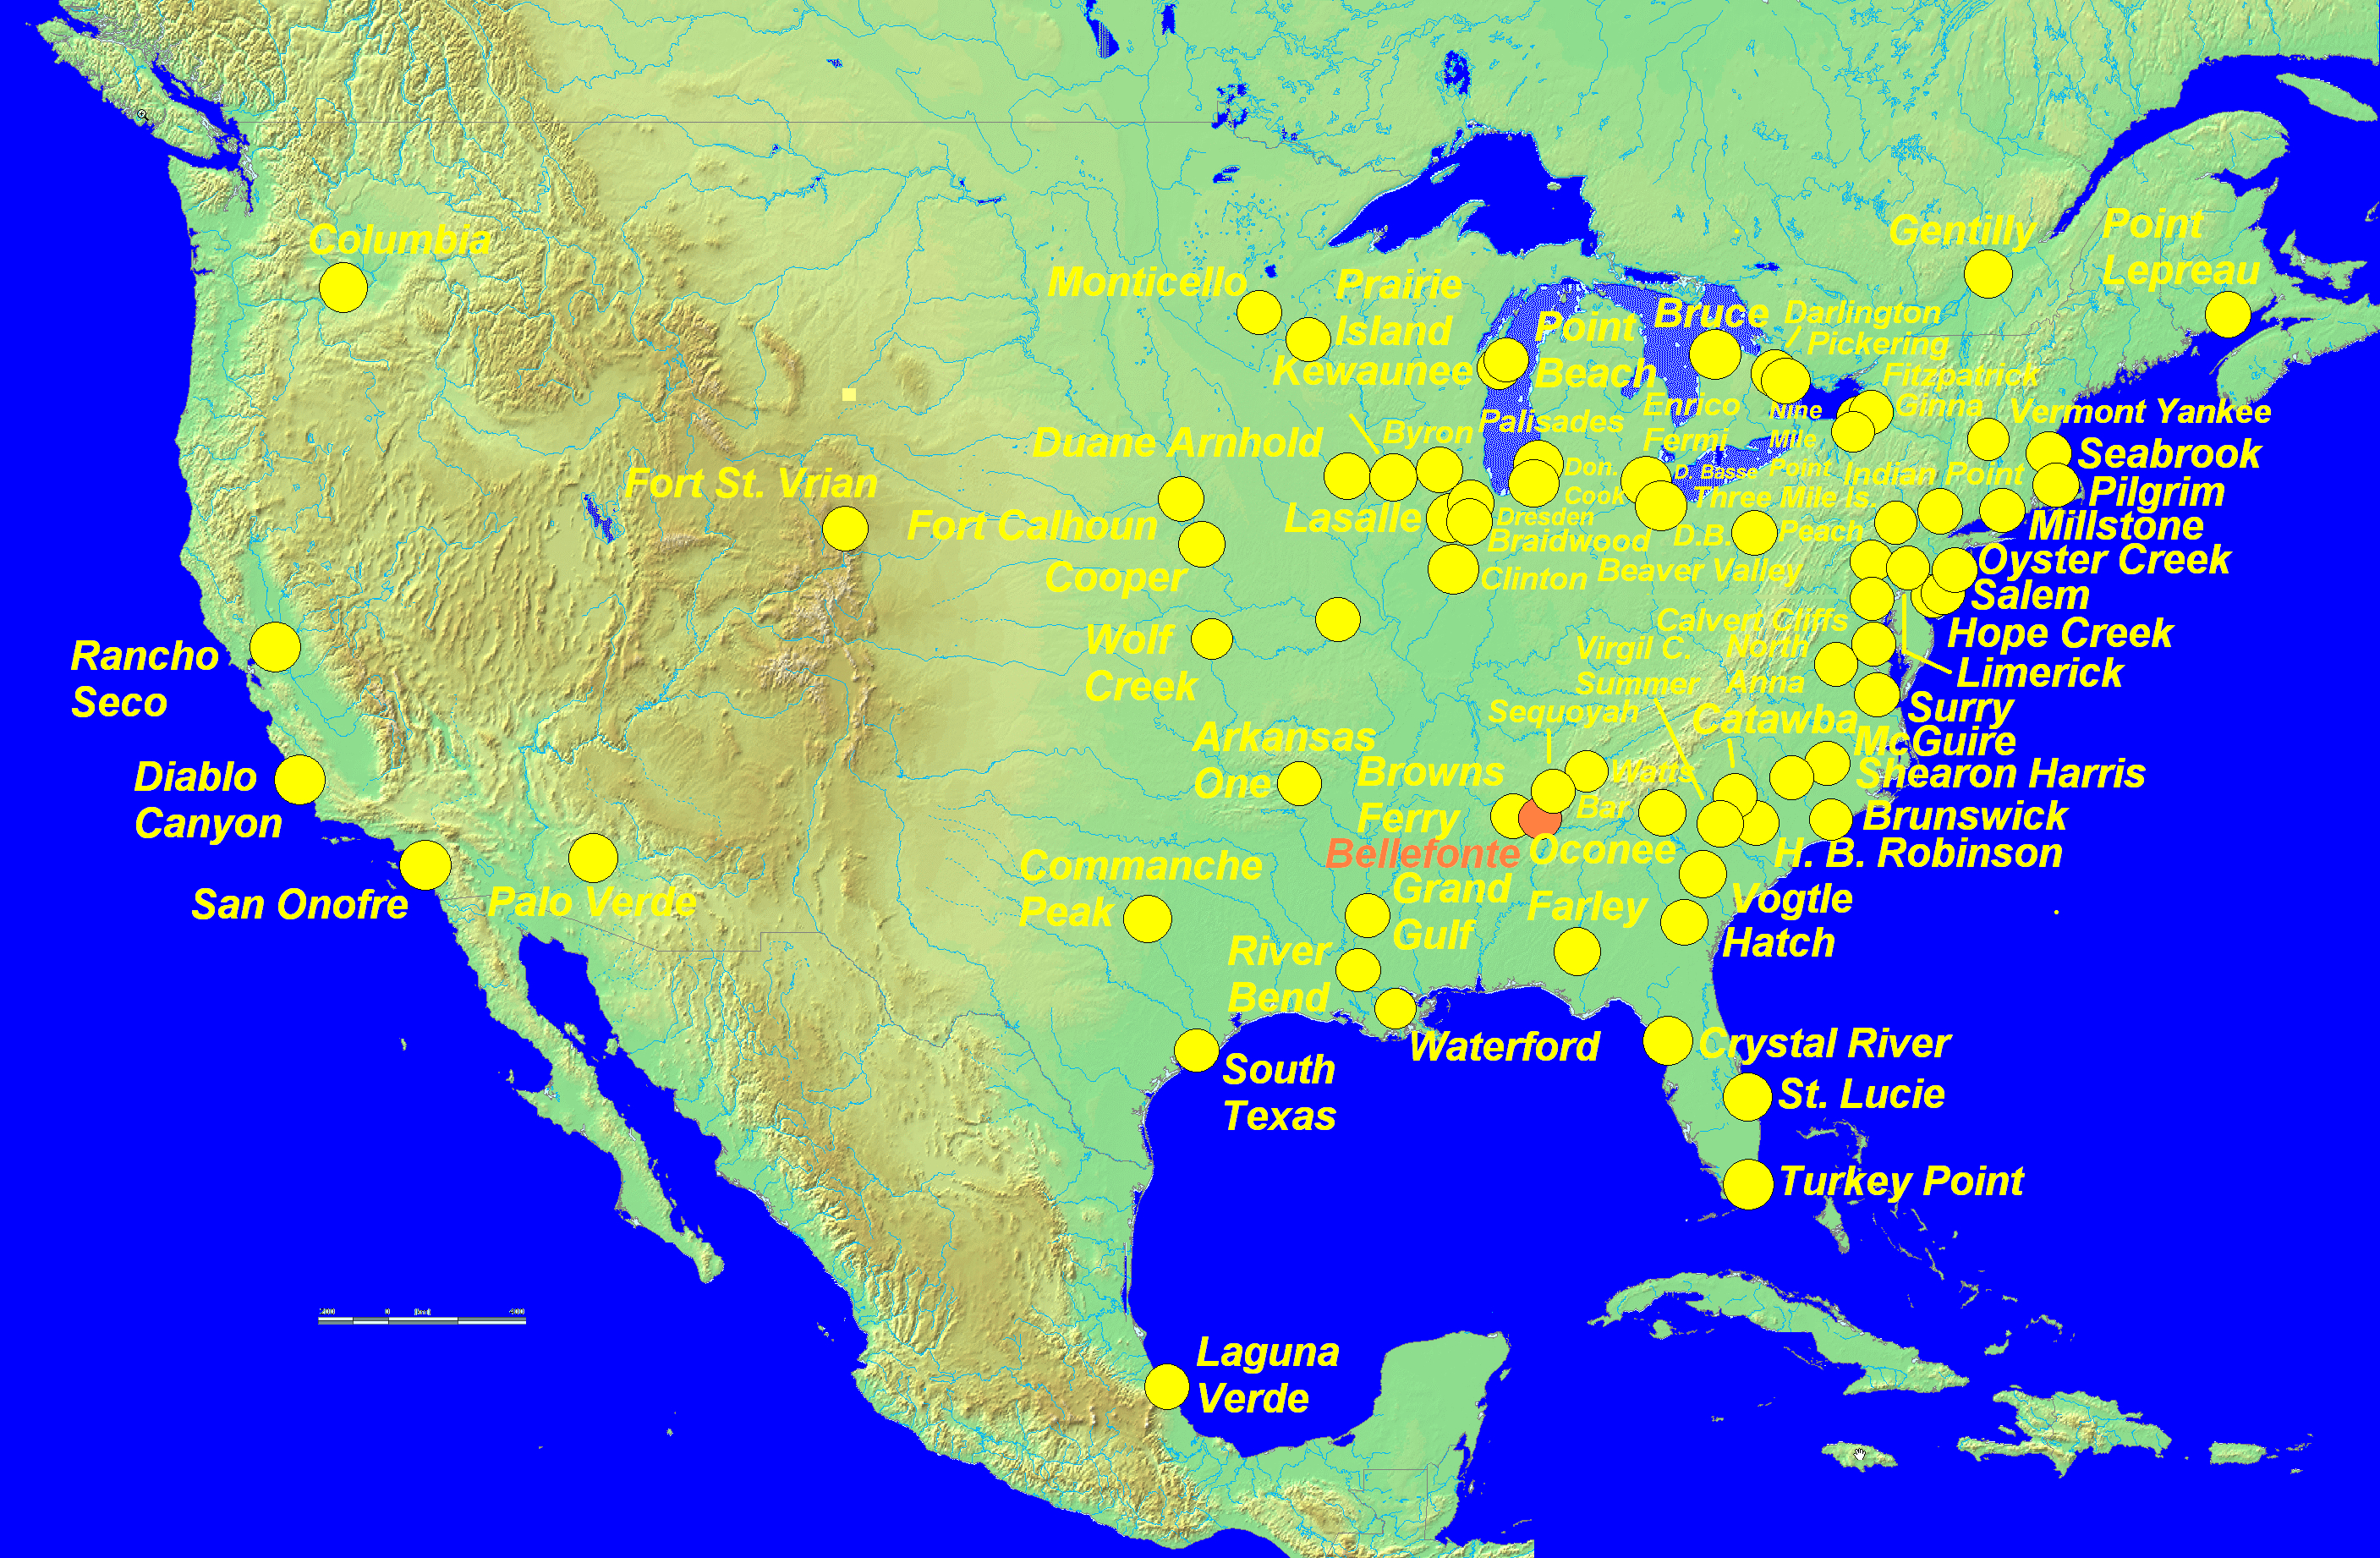 List Of Nuclear Power Plants In Us Map Renewable Energy In Australia - Nuclear Power Plants In Florida Map